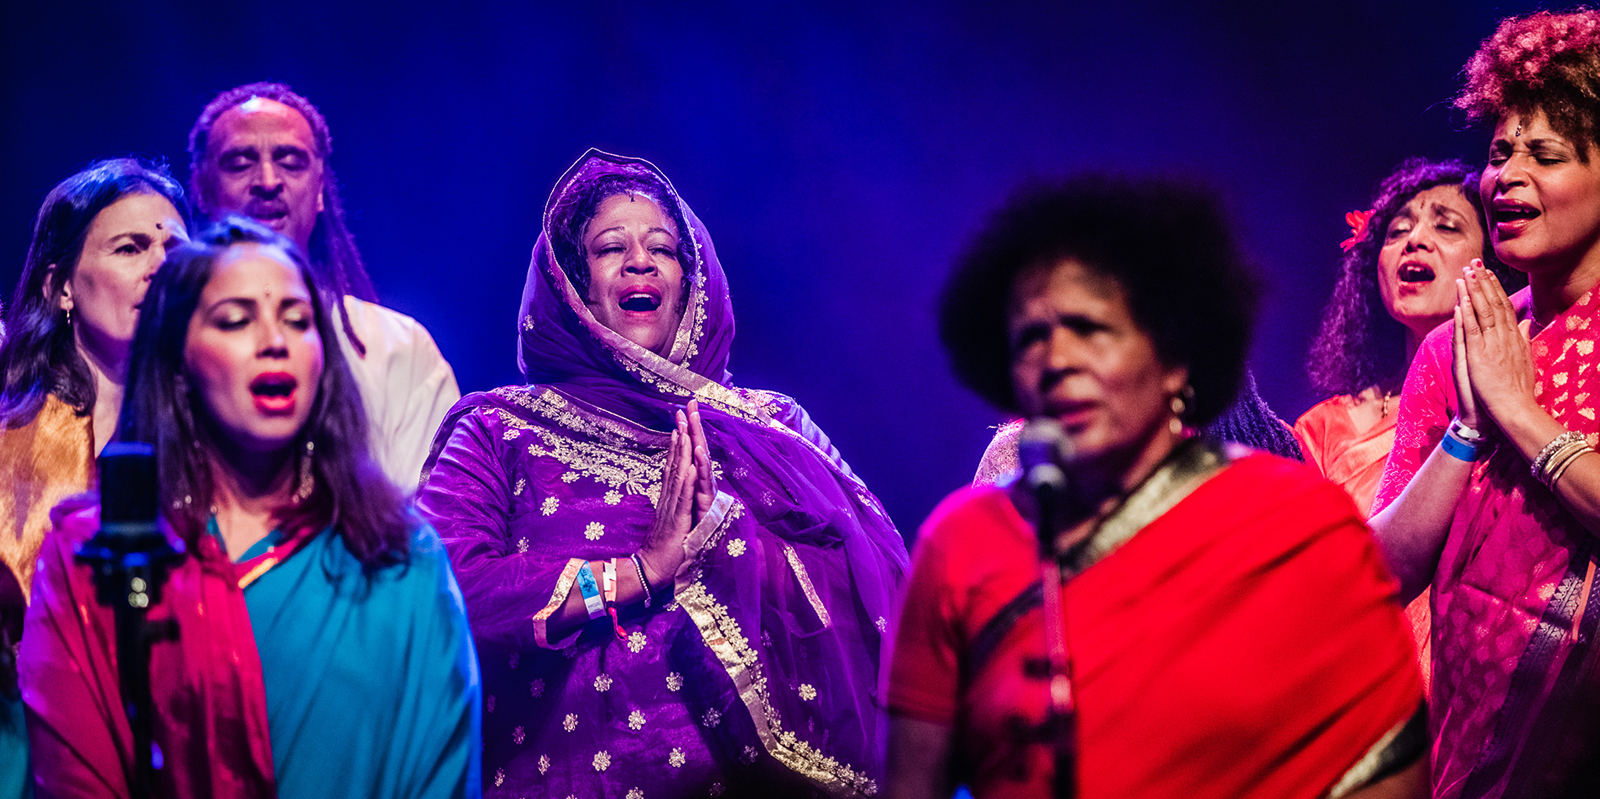 Listen to the Sai Anantam Ashram Singers perform the music of Alice Coltrane live at LGW17